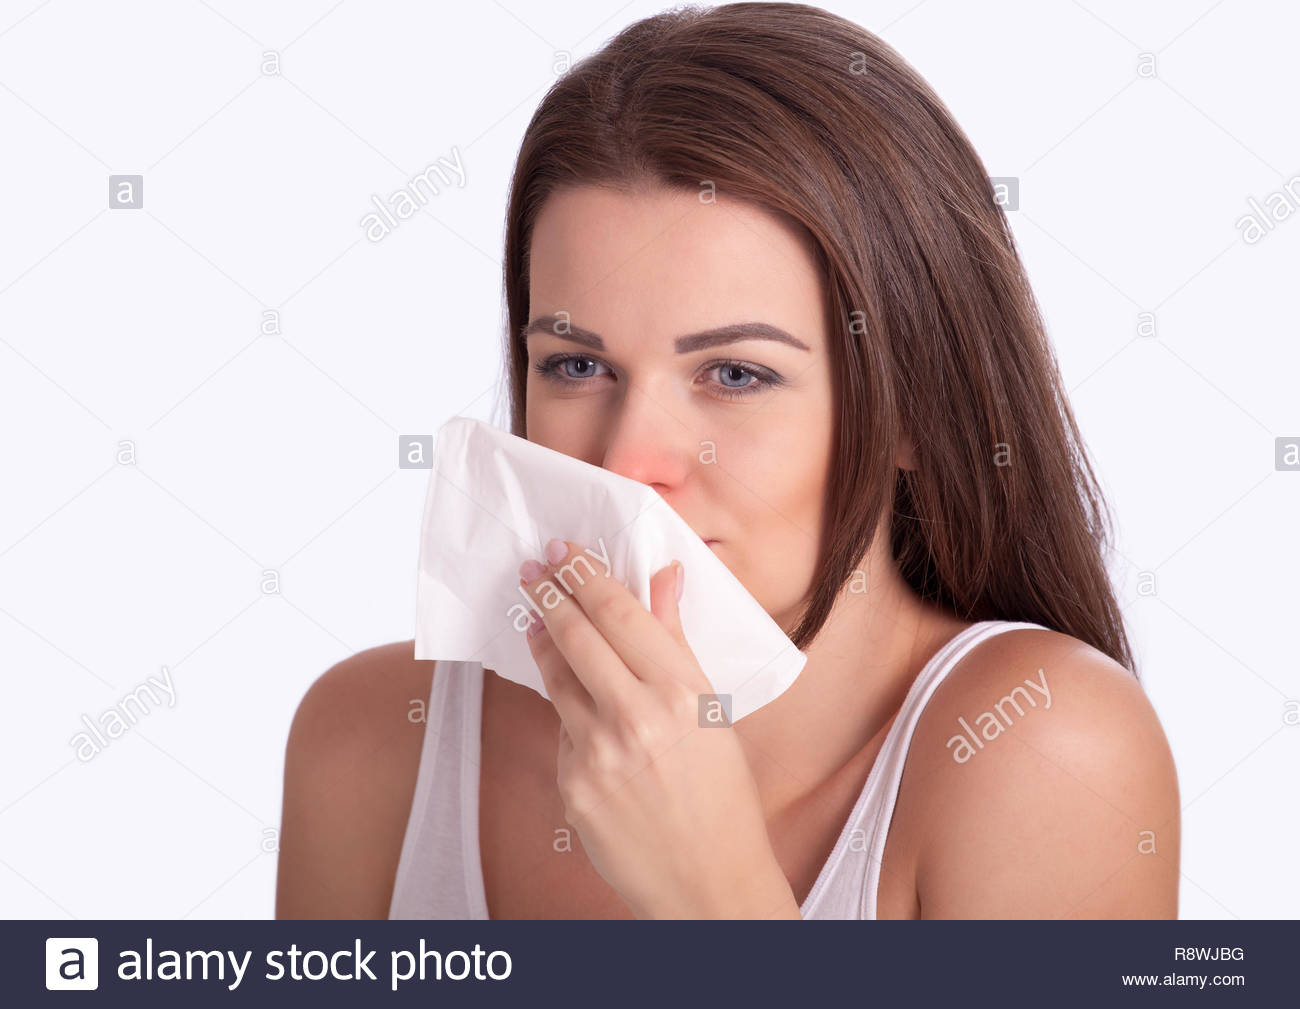 Pretty girl wiping nose with tissue, maybe in flu season - Stock Image